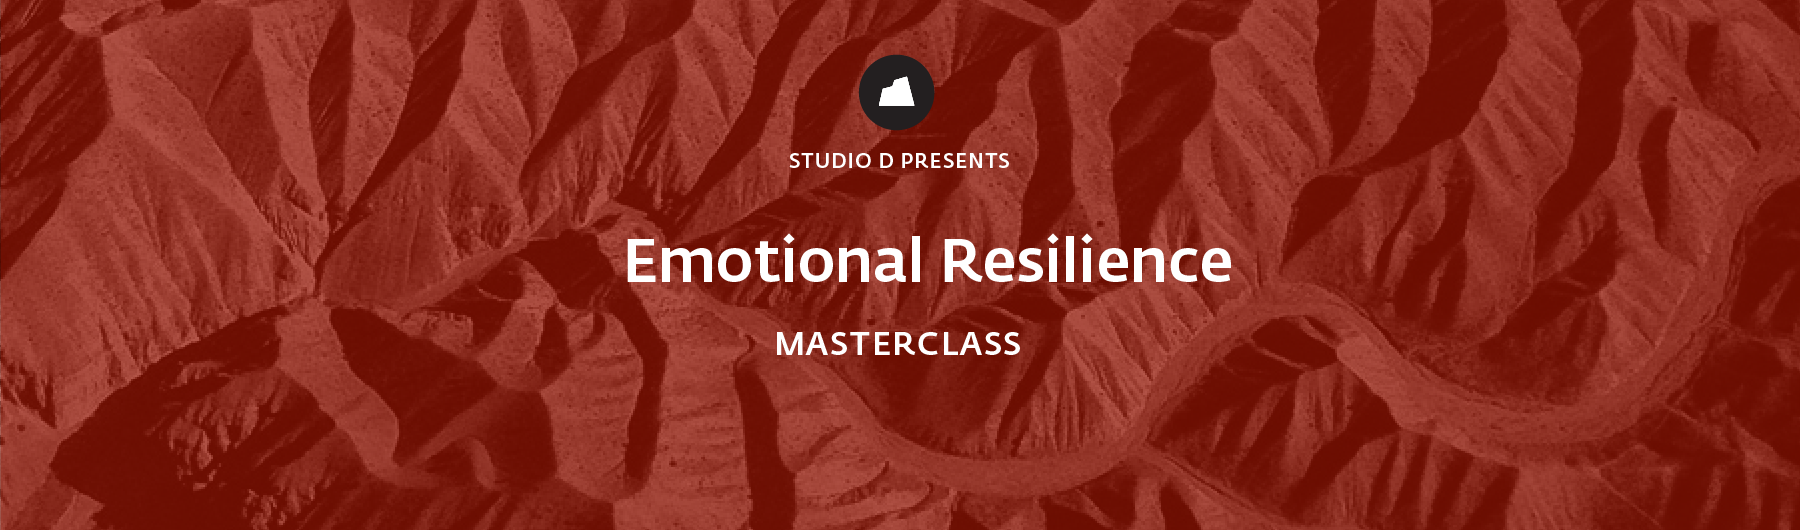 Emotional Resilience Masterclass, 22 April 2020, Singapore